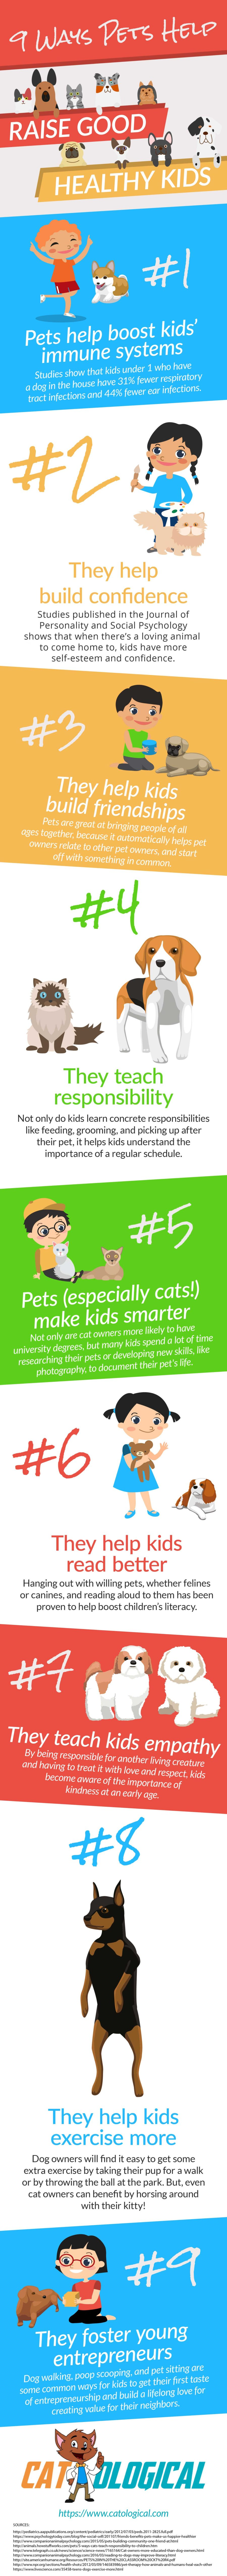 FitBark_Raise_Kids_Infographic-900x10199 | Why Getting A Pet For Your Kids Is Actually A Great Idea!